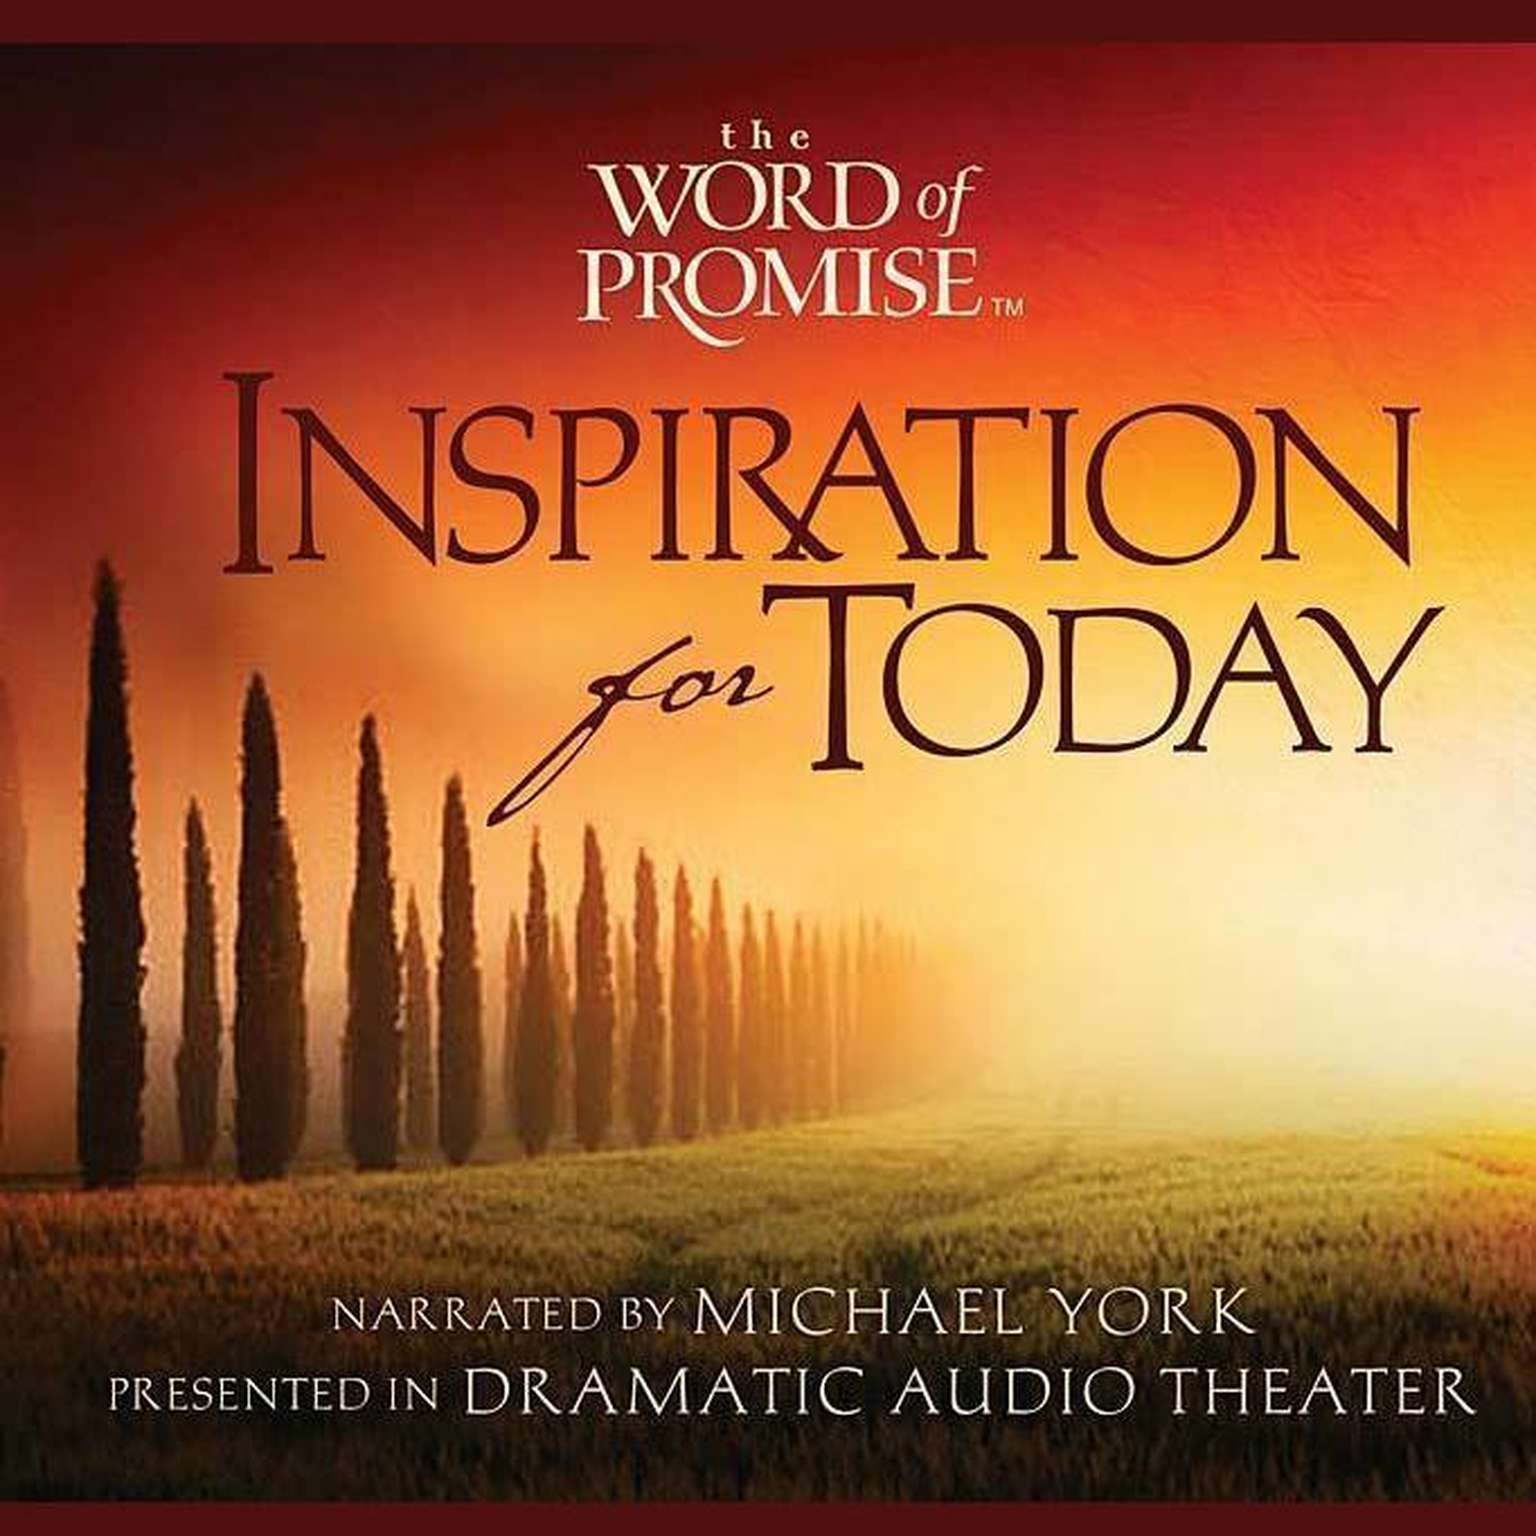 Printable the word of promise inspiration for today audiobook cover